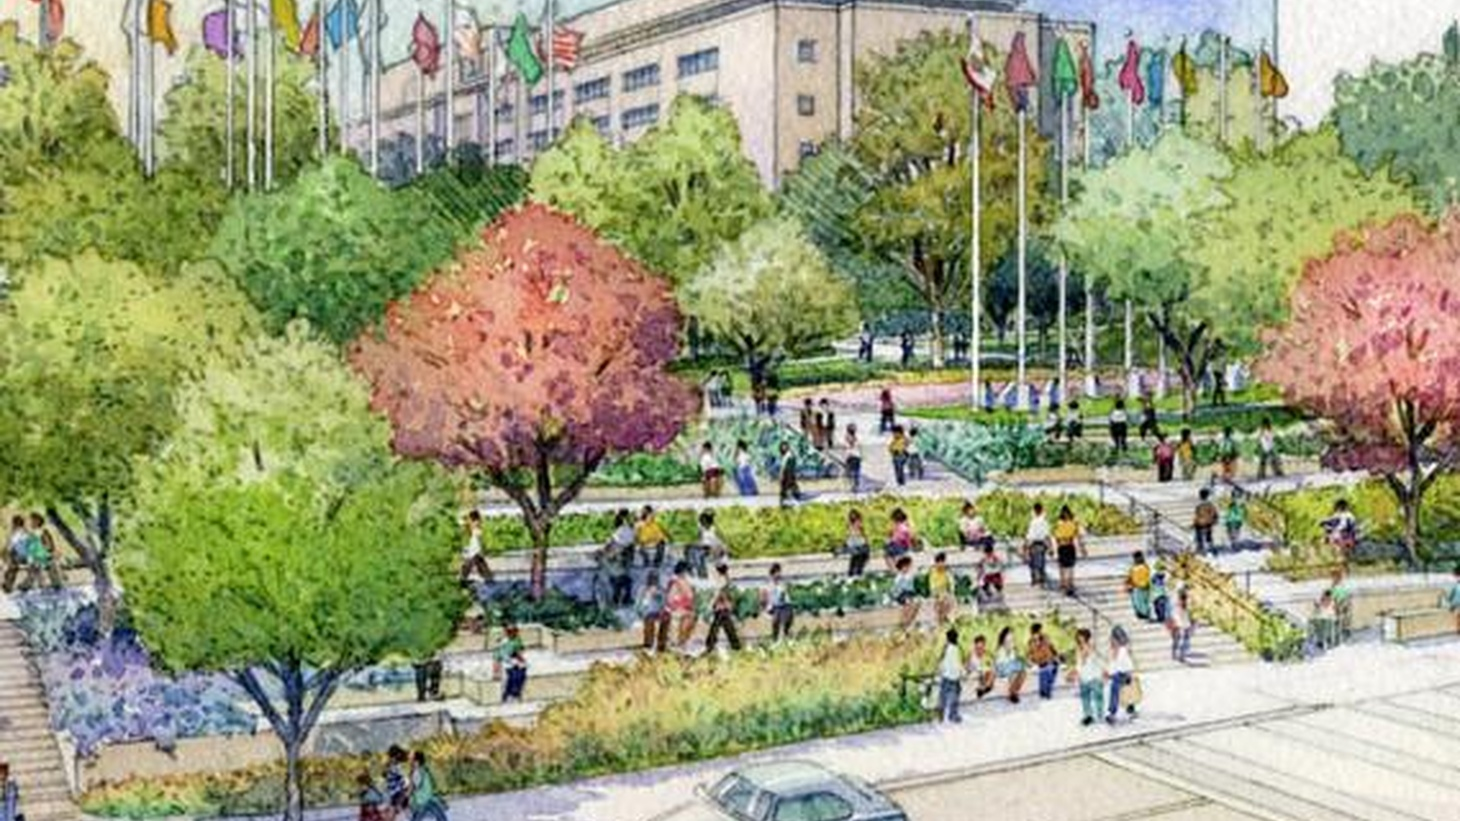 A public park built mostly with private money will open in LA tomorrow.  It stretches from the County Courthouse and Hall of Administration on Grand Avenue all the way down the hill to the LA City Hall.  It's designed for a range of uses from family barbeques to musical concerts.  But will it become a destination for the rest of Los Angeles? Also, a rebroadcast of To The Point on Penn State and the culture of college football.